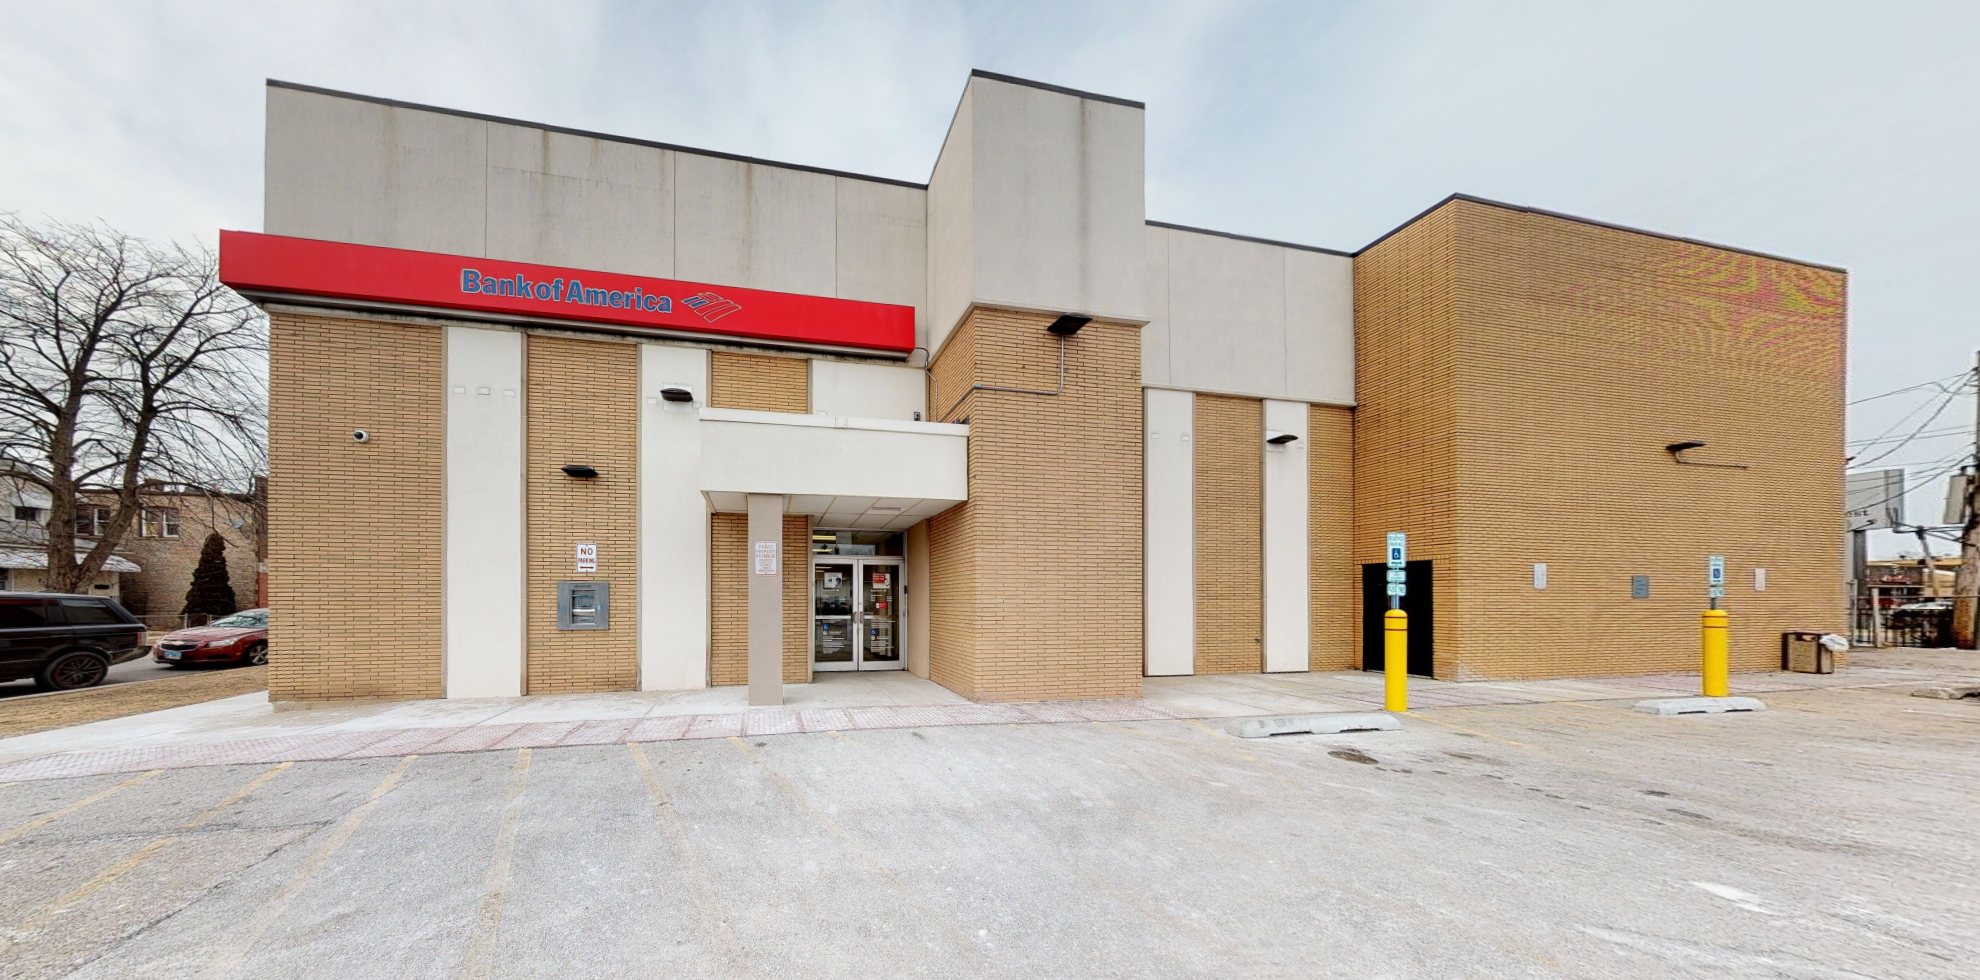 Bank of America financial center with drive-thru ATM   1718 W Lake St, Melrose Park, IL 60160